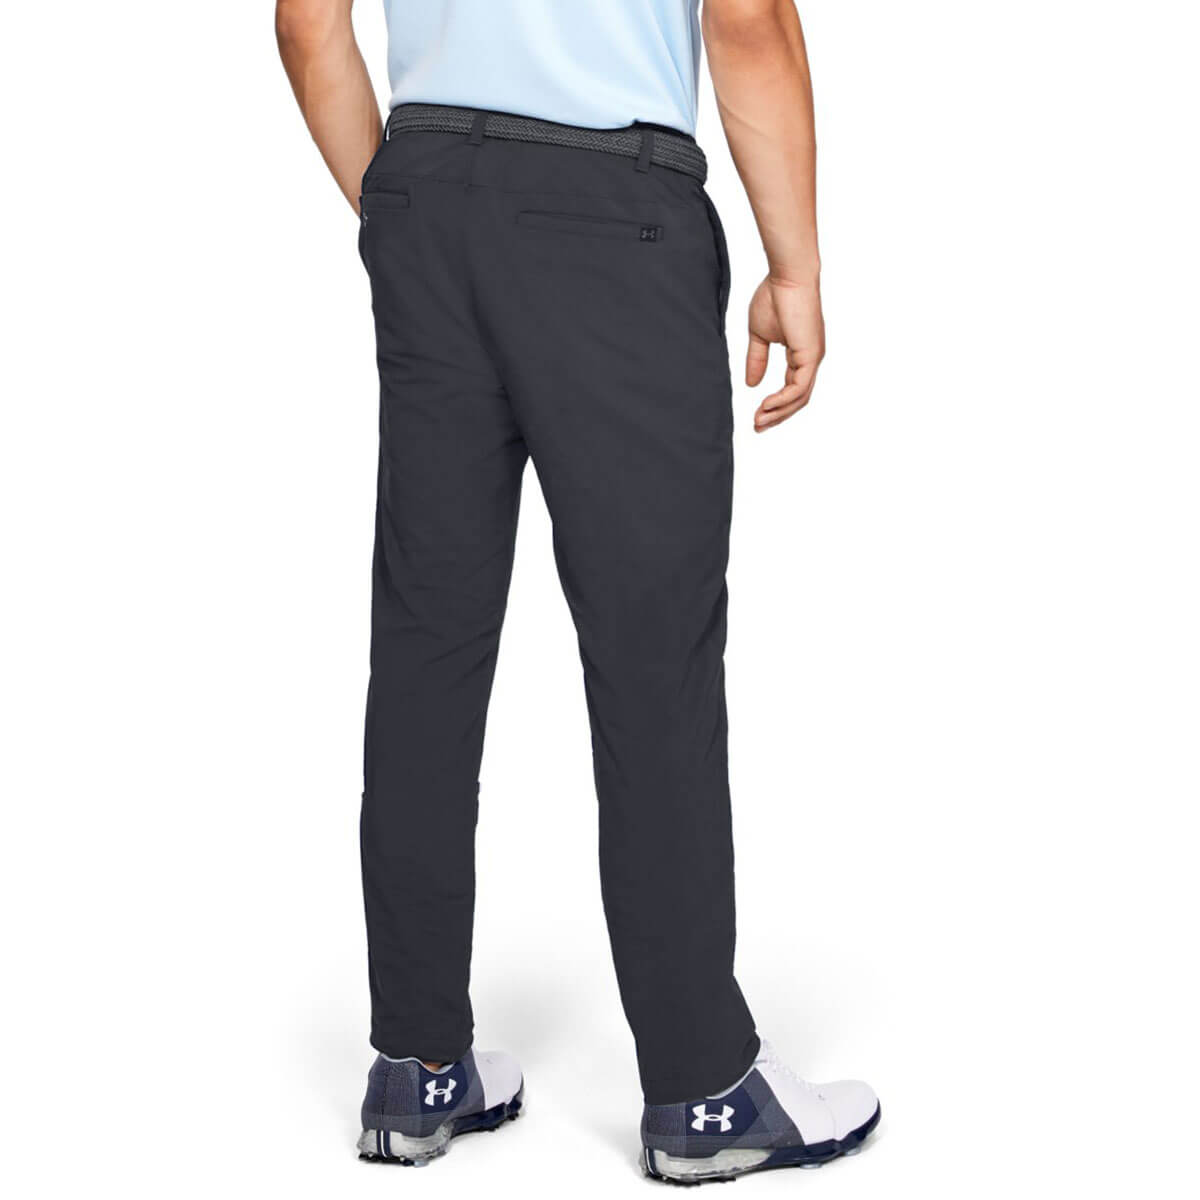 Under-Armour-Mens-2019-EU-Performance-Slim-Taper-Soft-Stretch-Golf-Trousers thumbnail 19